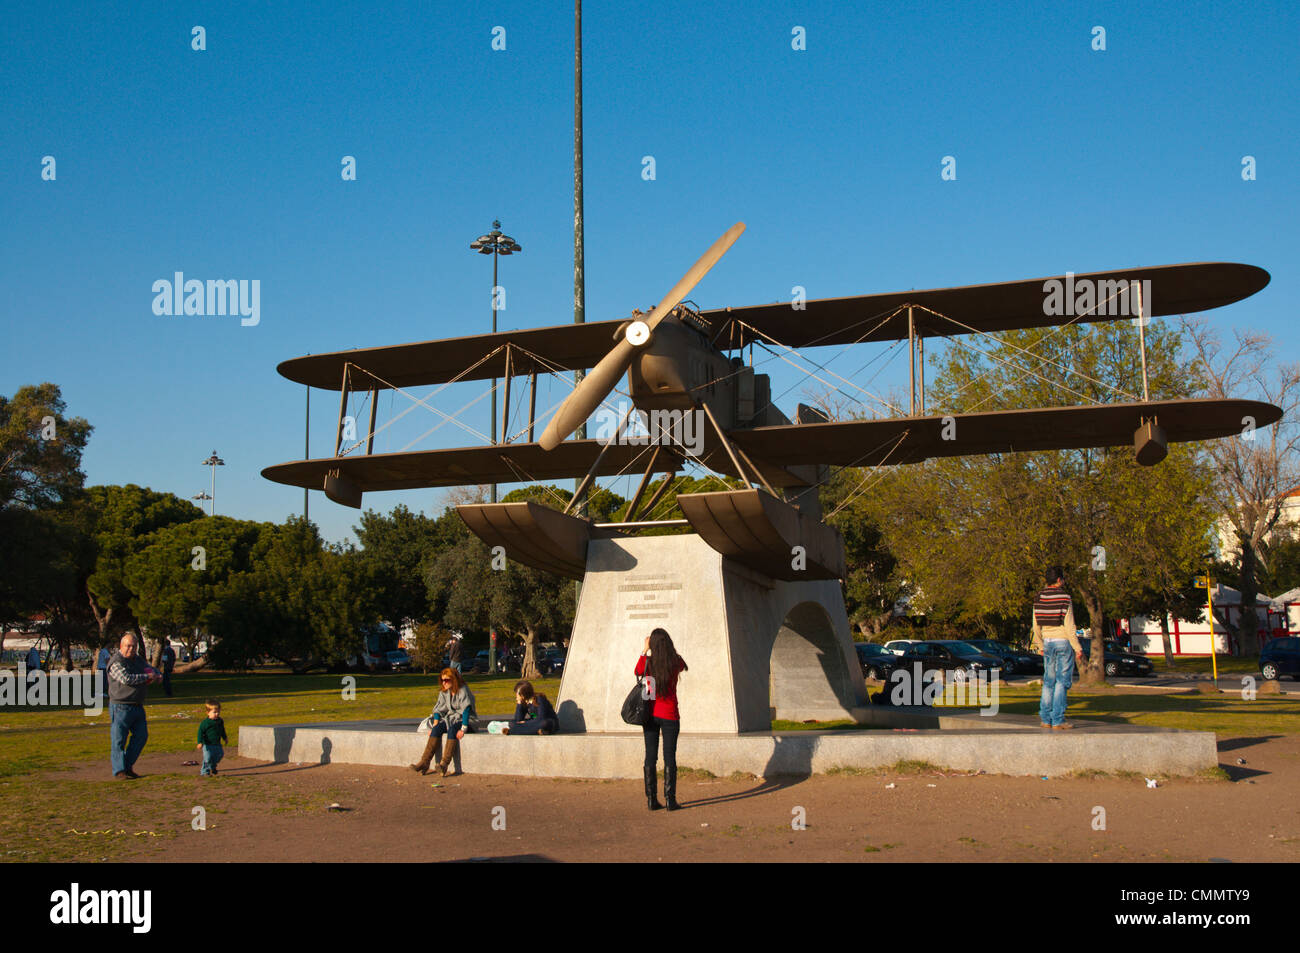 Replica of wartime Santa Cruz aeroplane that transported people to Canary Islands in Belem district Lisbon Portugal - Stock Image